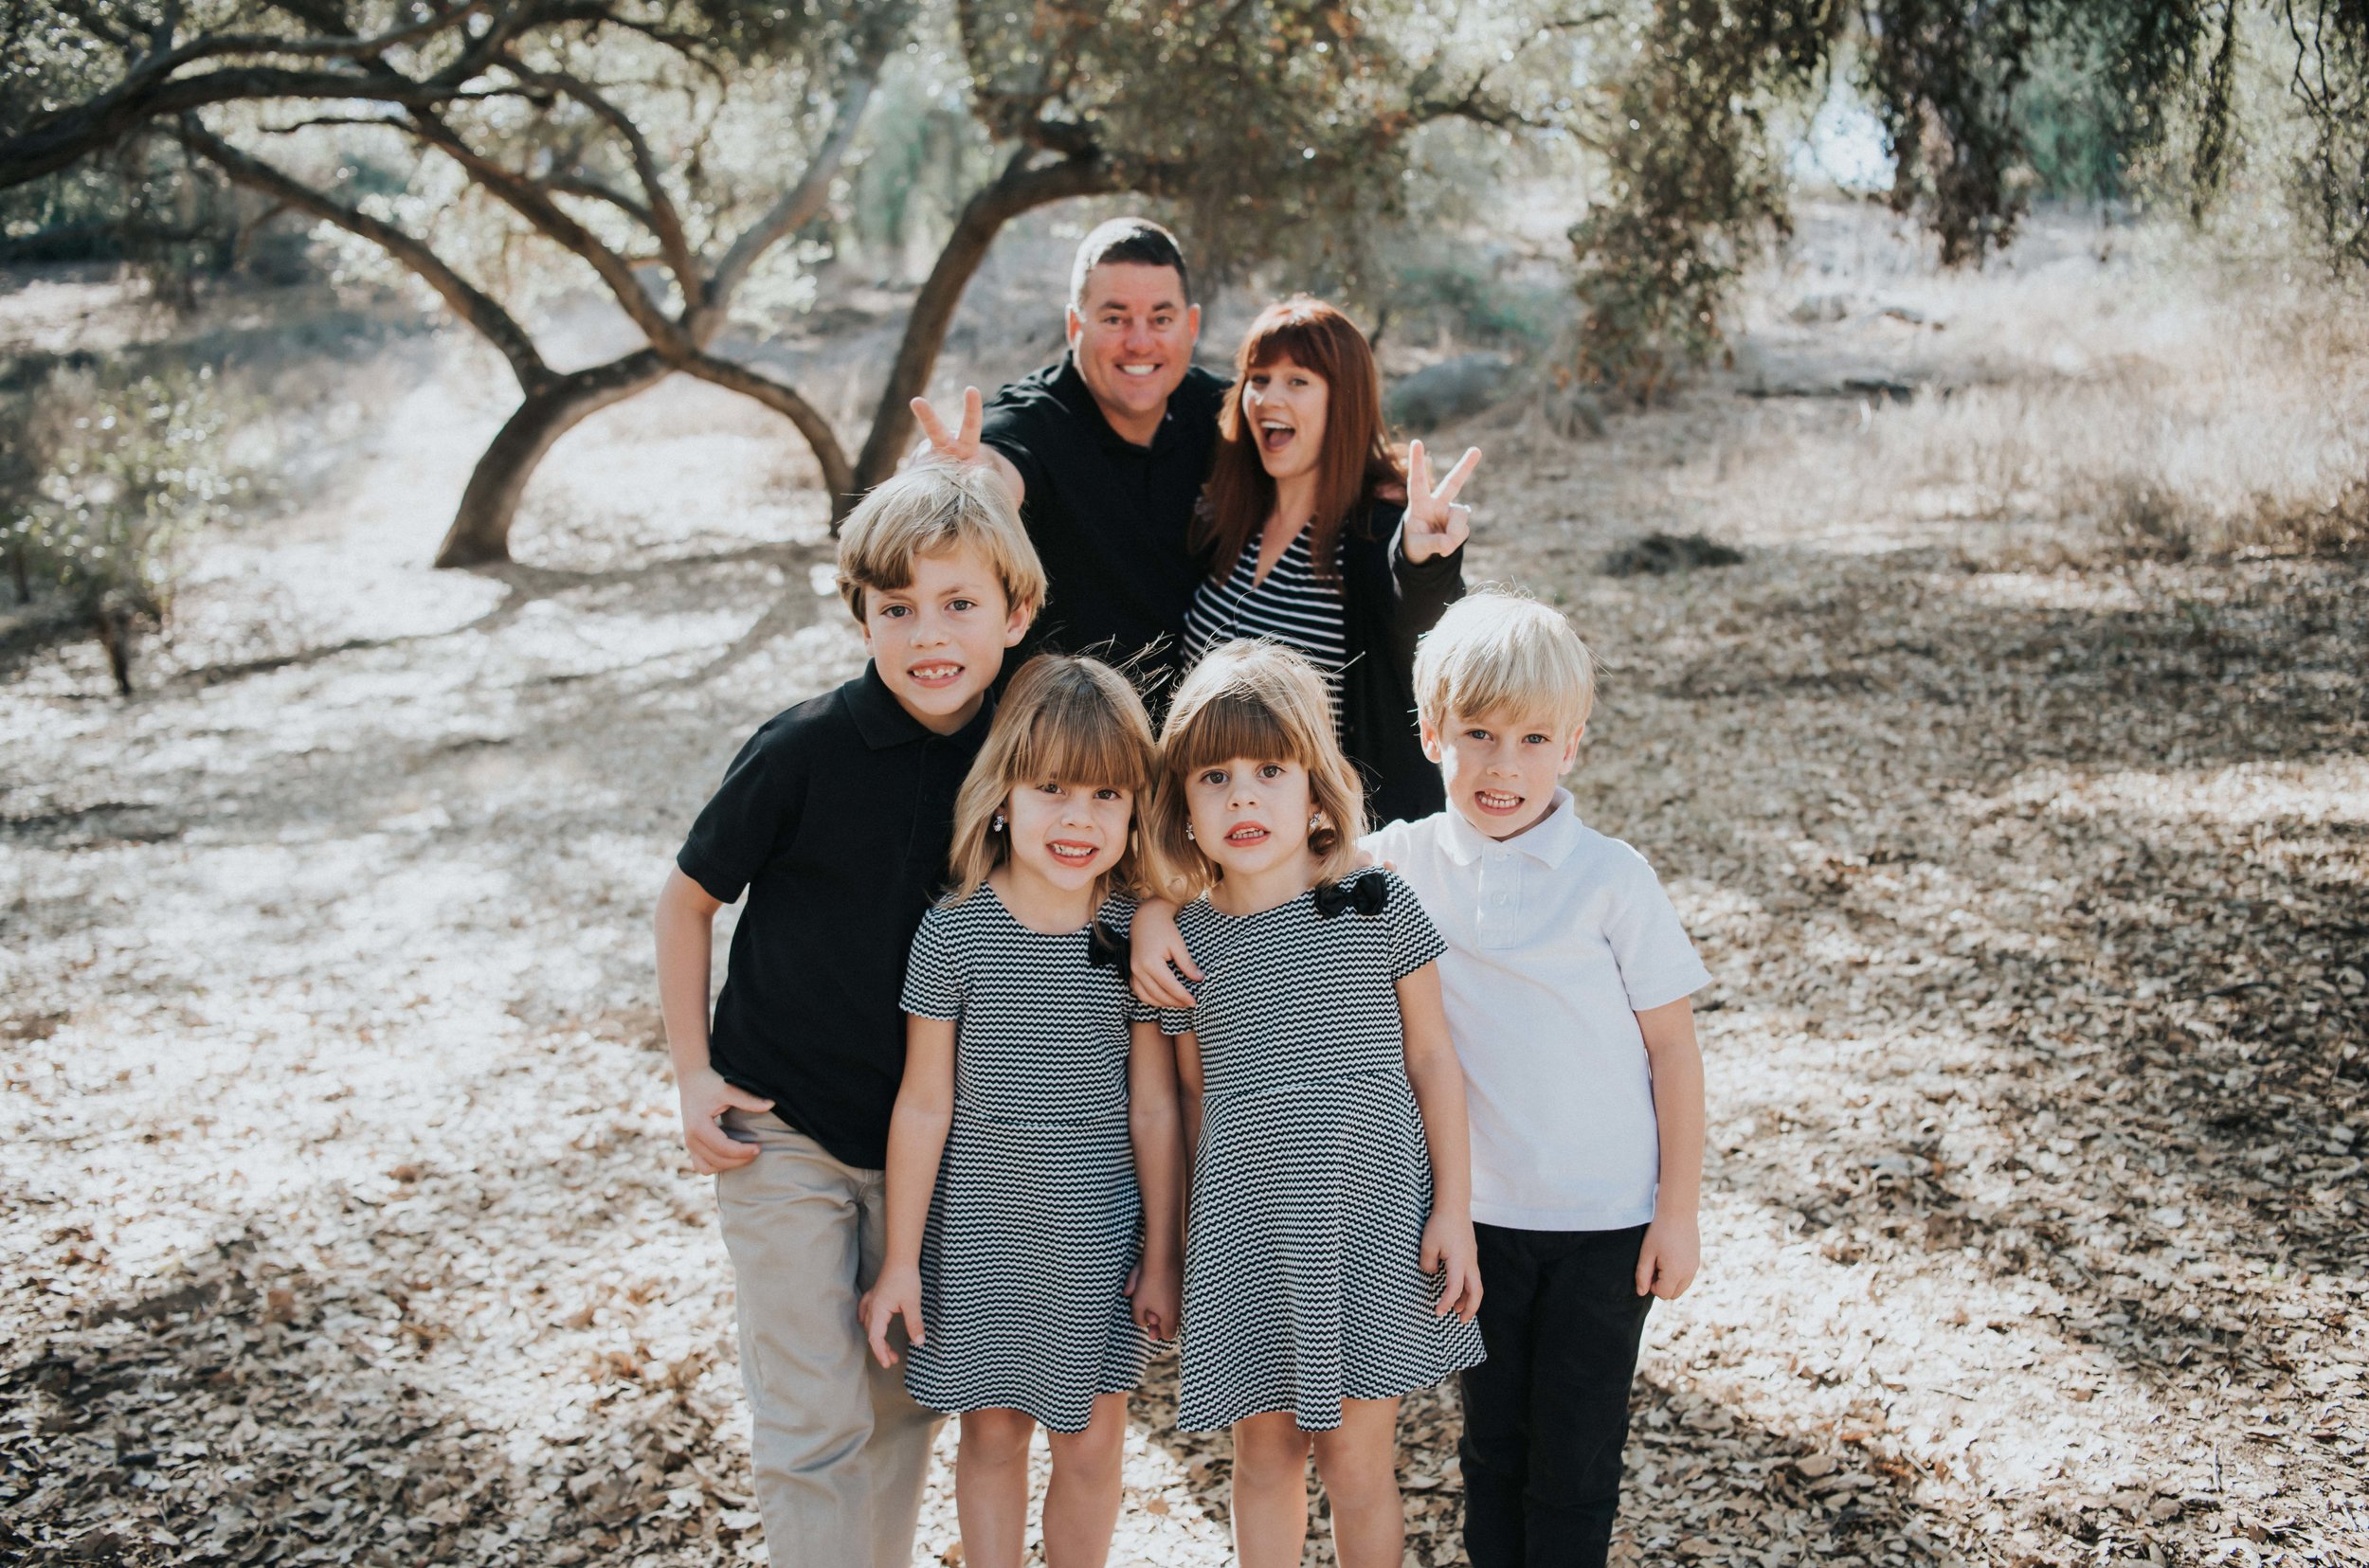 FAITH AND PARENTING IN THE DIGITAL AGE WITH SUNNY GAULT